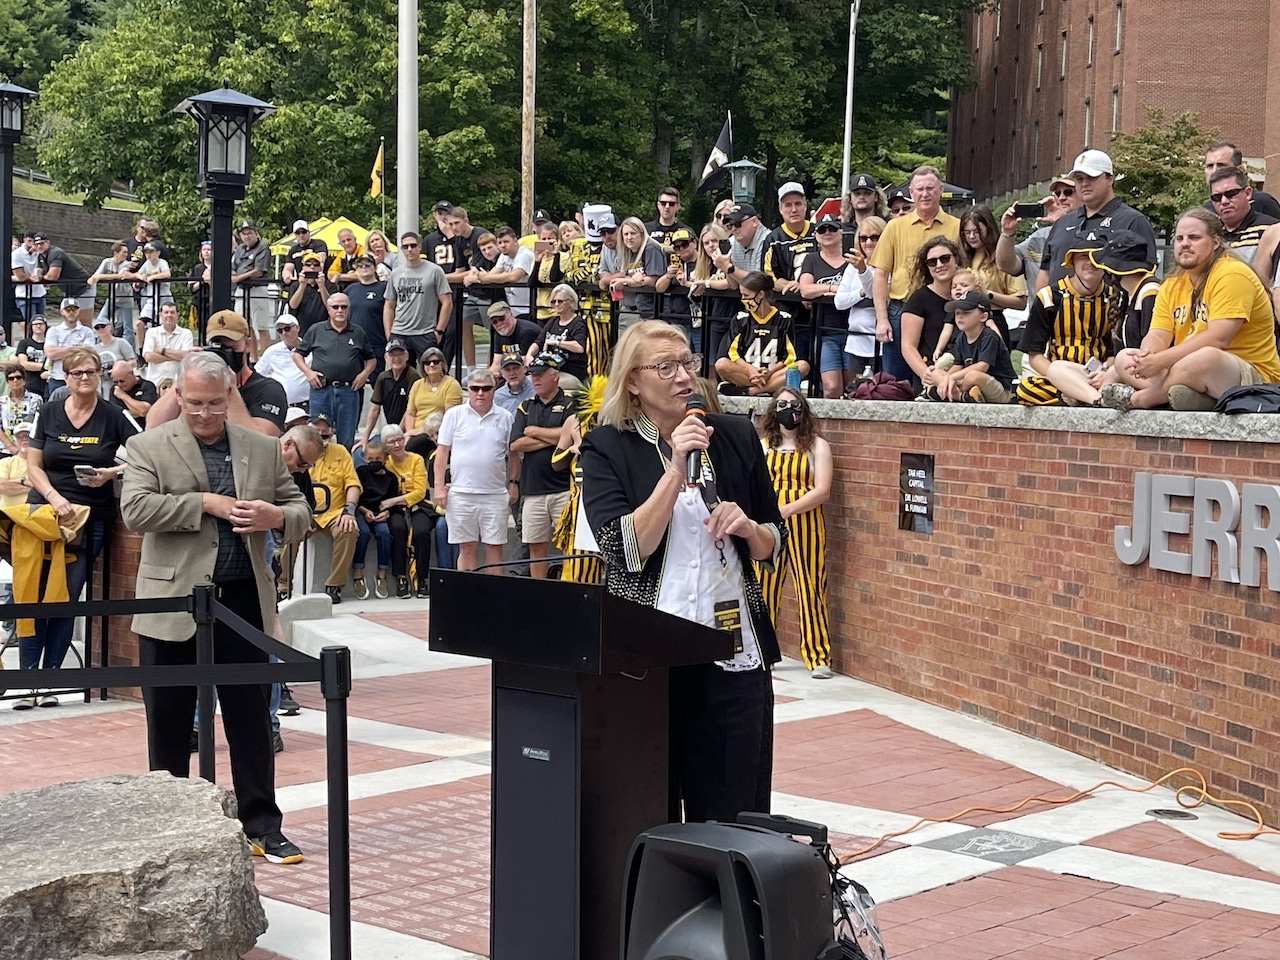 Coach Jerry Moore statue and plaza dedication unveiled ahead of App State home game